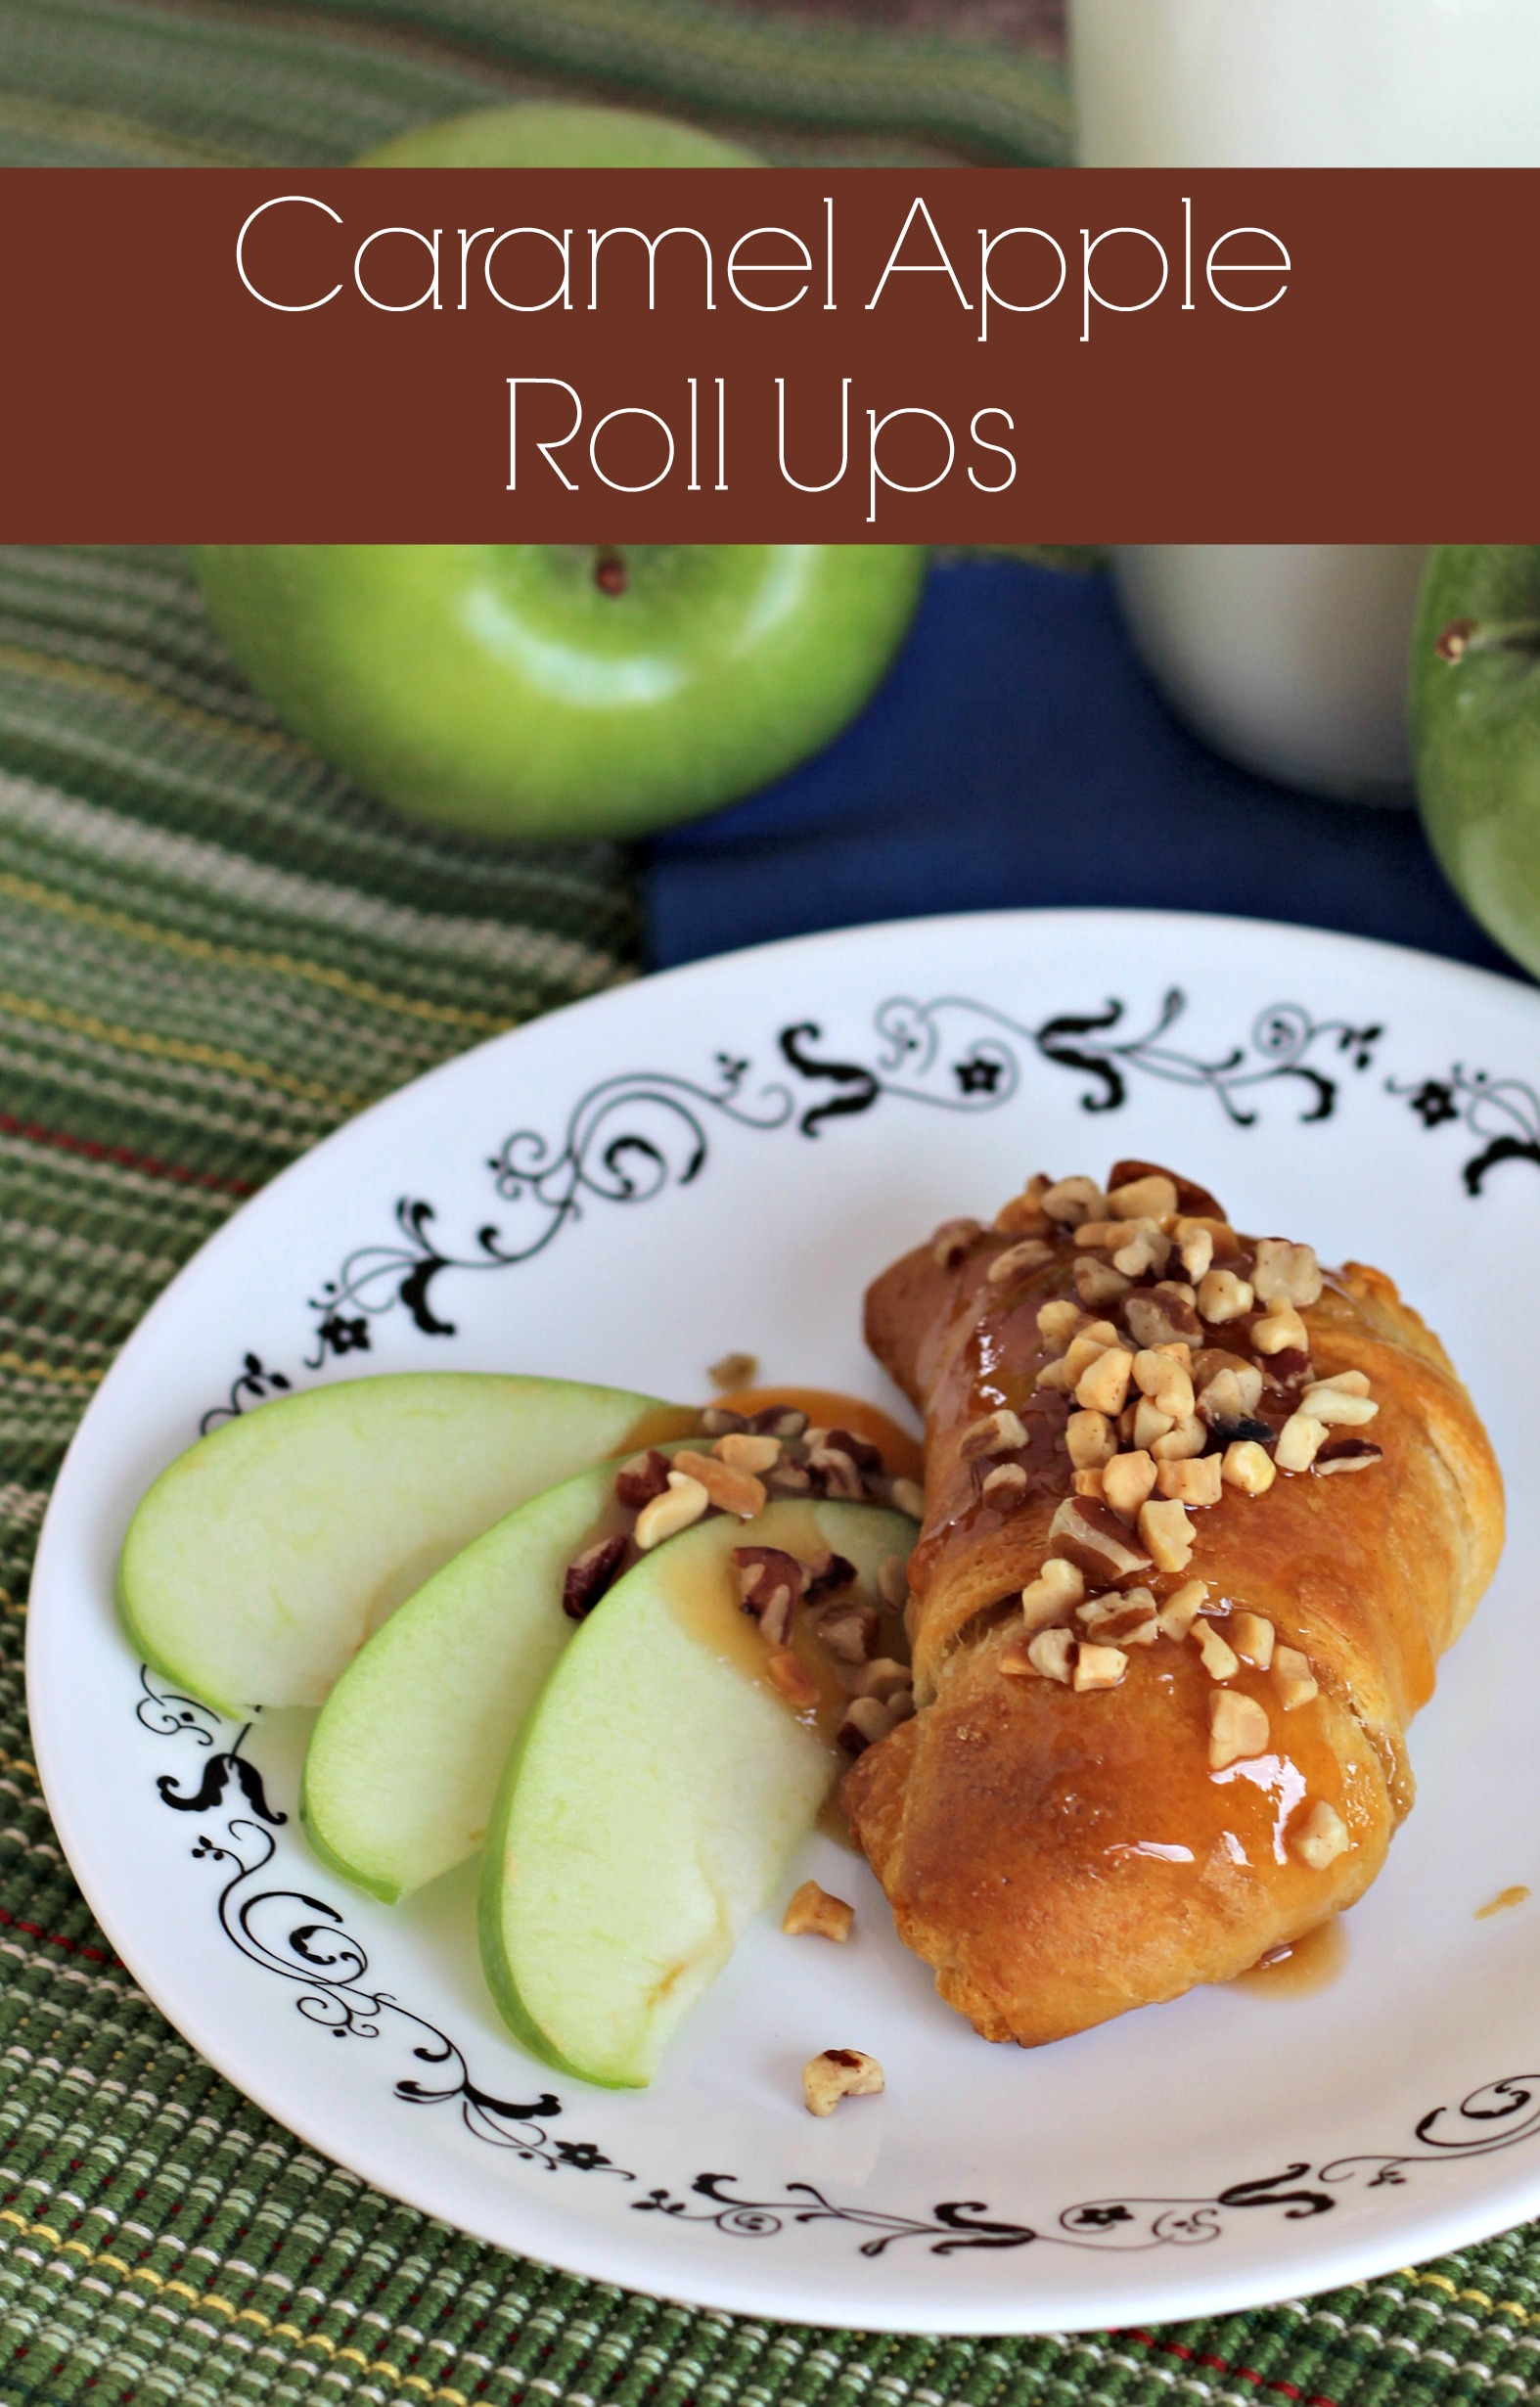 Caramel Apple Roll Ups